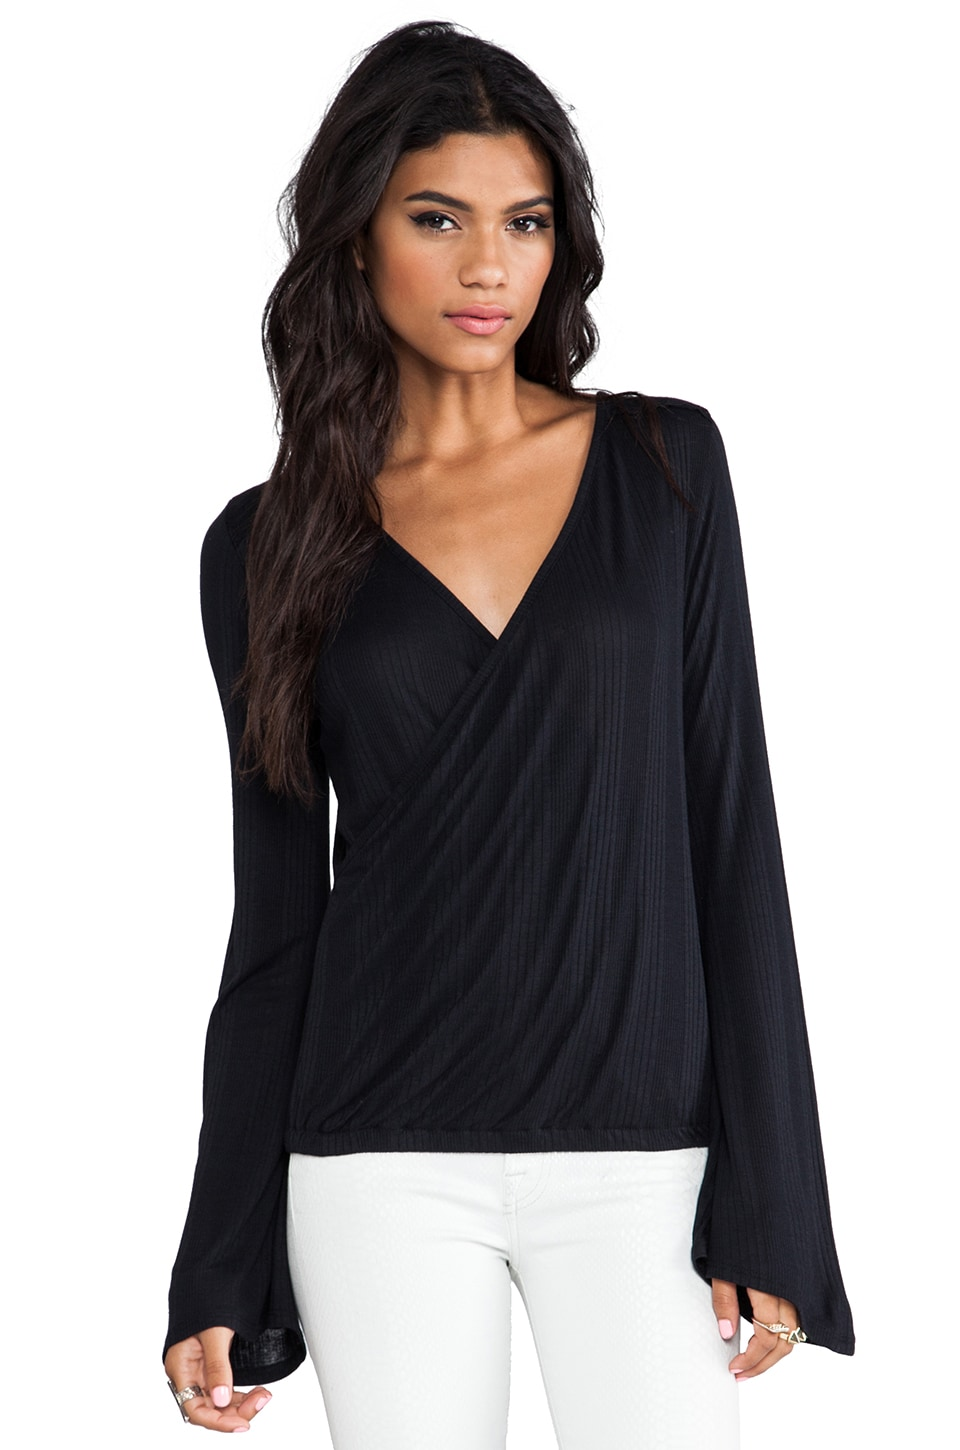 LA Made Bell Sleeve Wrap Top with Lace in Black/Black